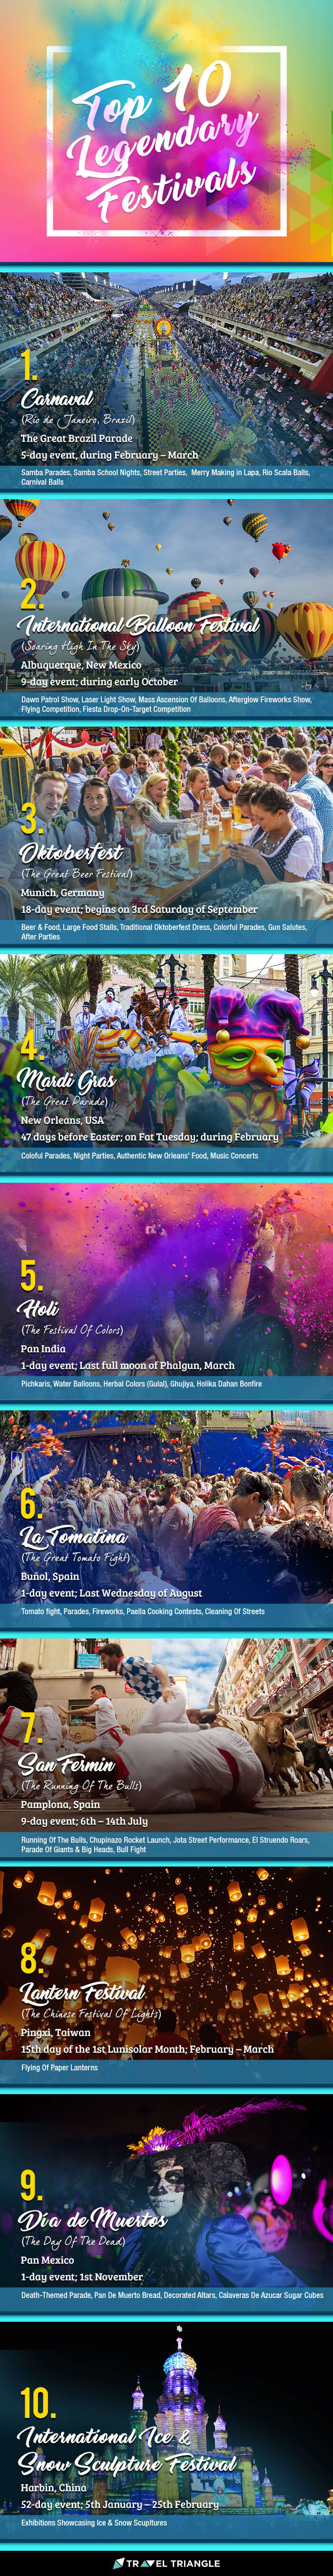 An infographic of the top 10 legendary festivals in the world